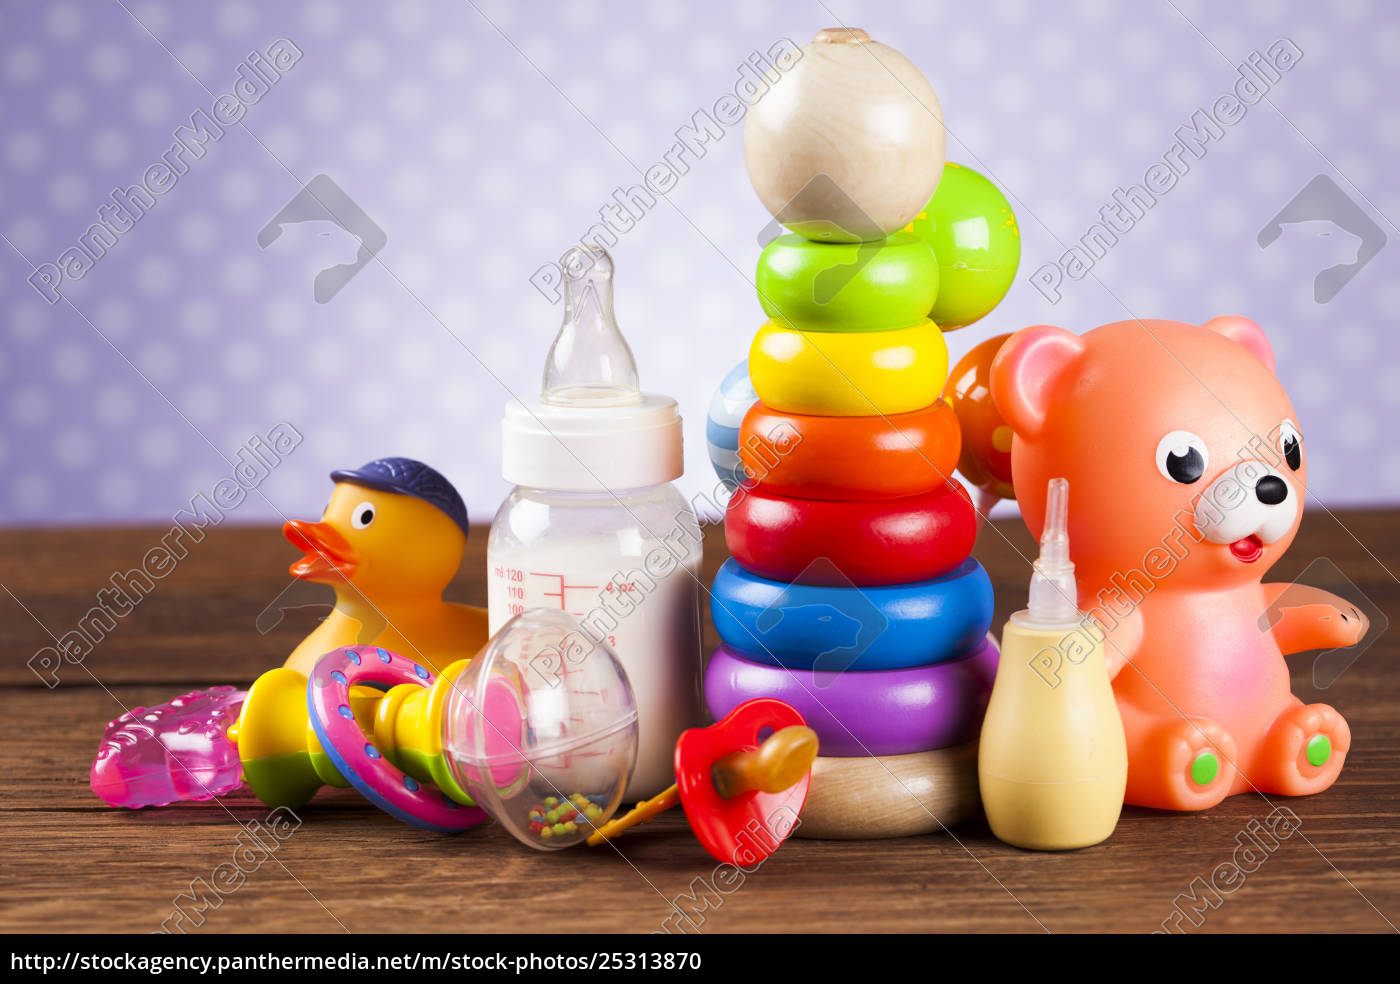 stuffed, baby, toys, on, wooden, background - 25313870